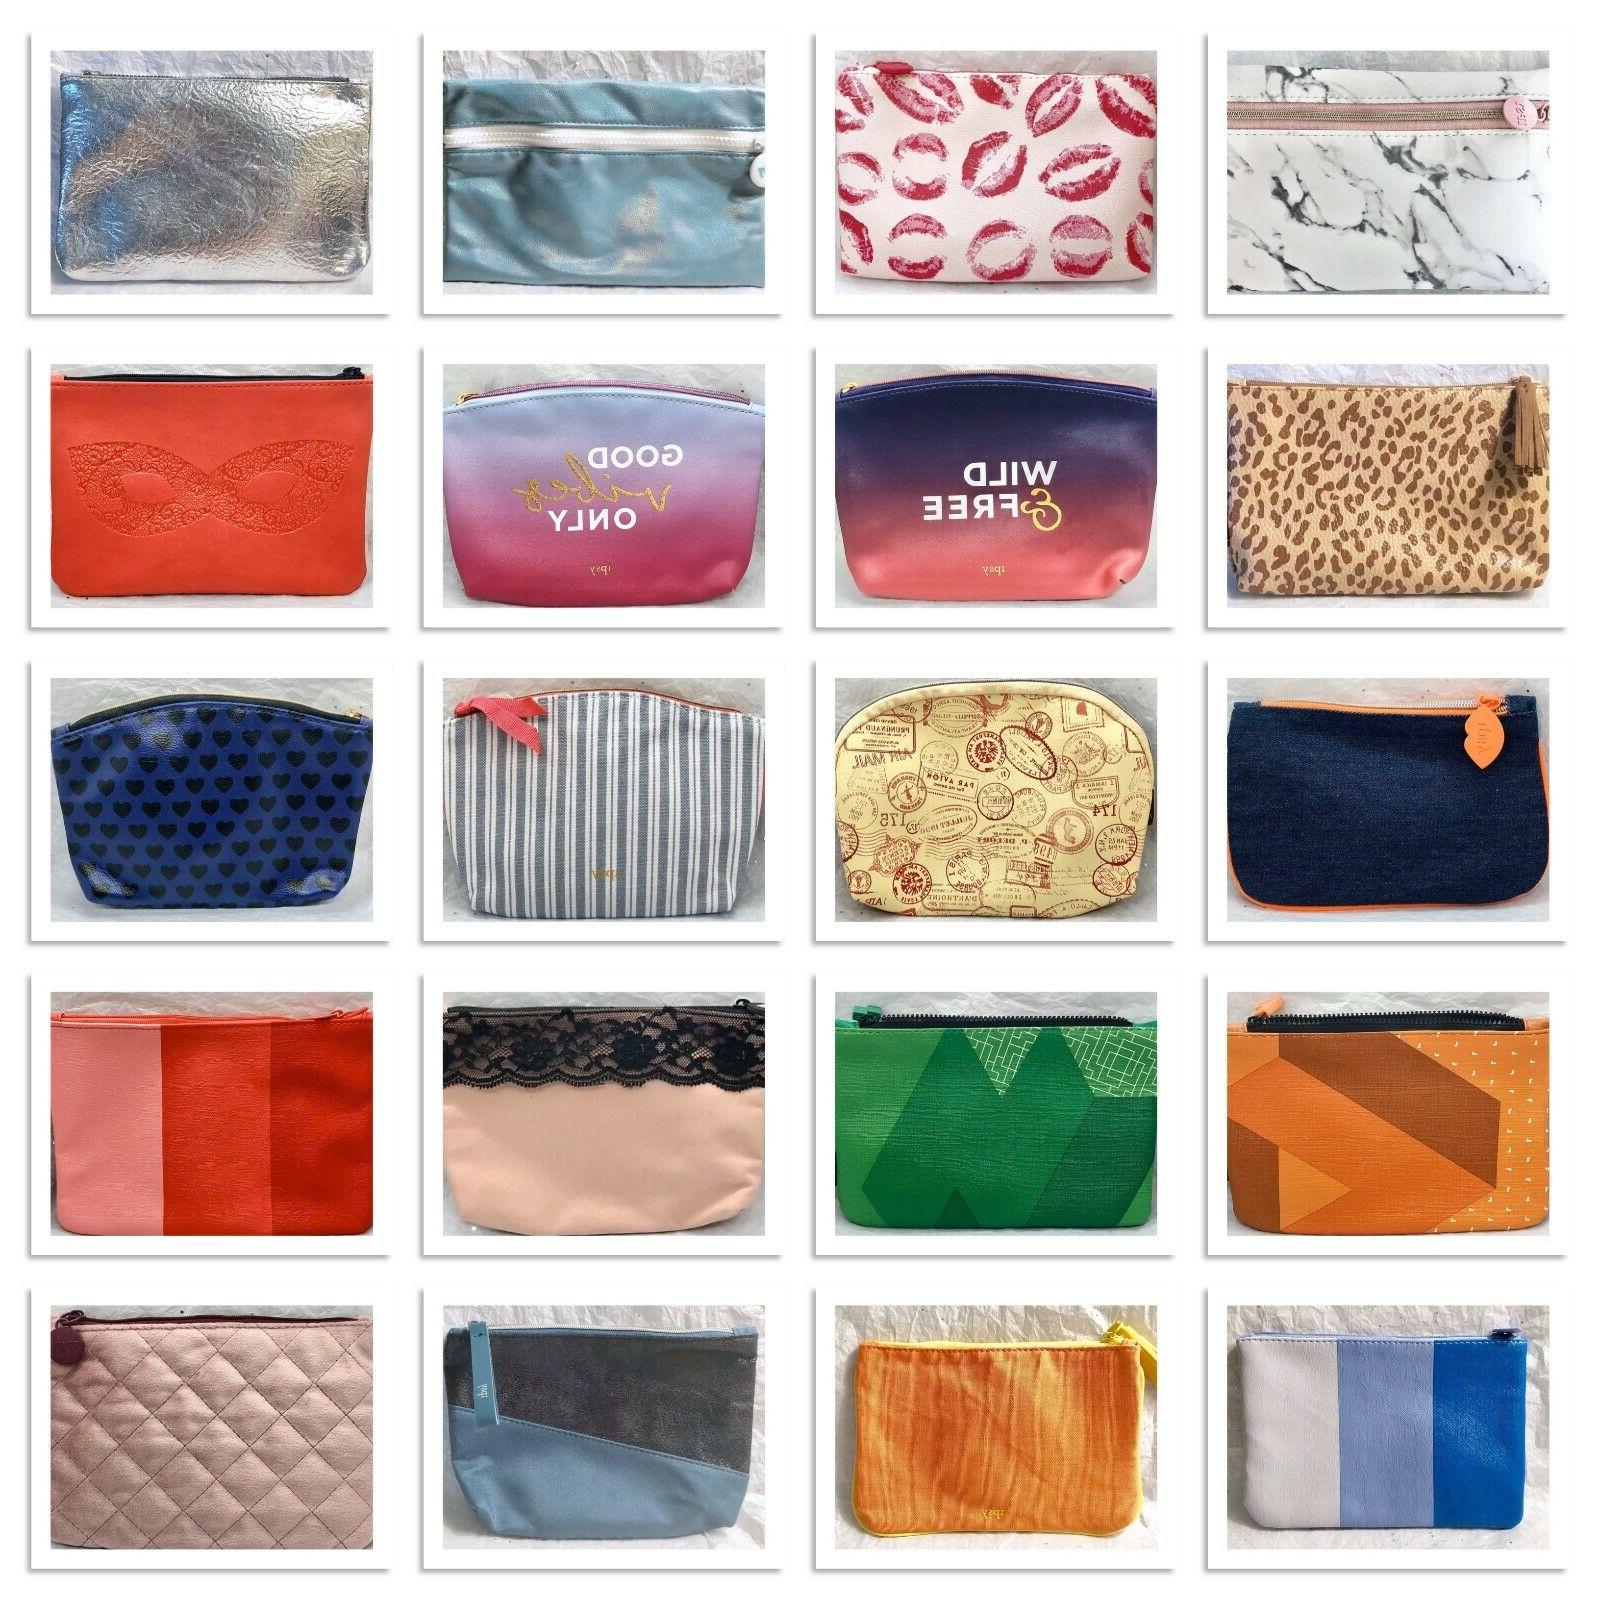 glam makeup cosmetics purse clutch bag bags